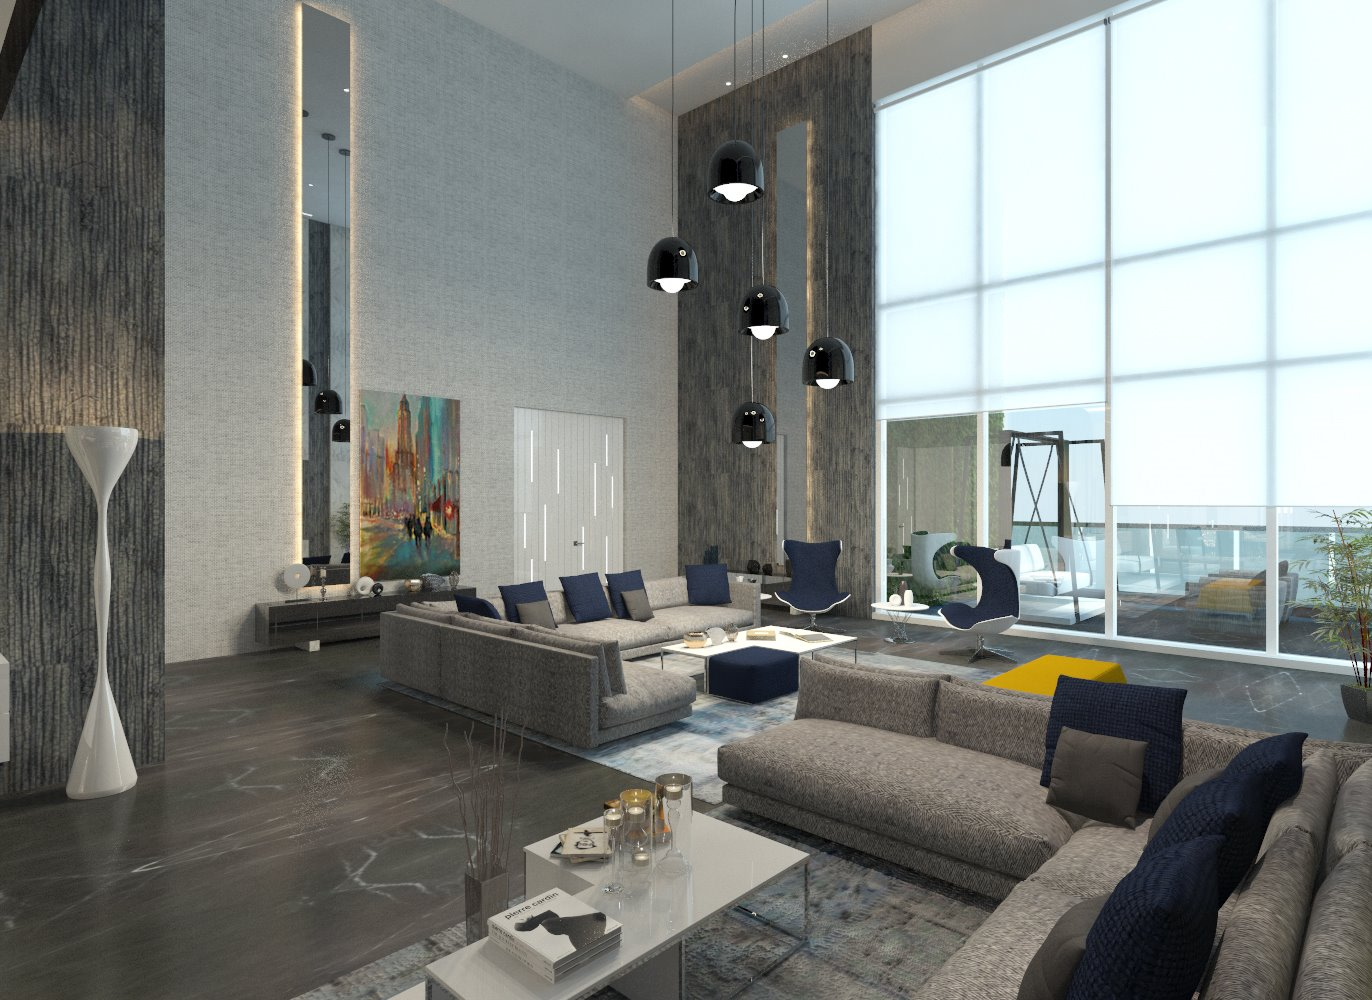 Plush living room with L shaped grey couch , hanging black lamps, see-through stationery windows and white and grey theme by Jui Maniar Living-room Contemporary | Interior Design Photos & Ideas